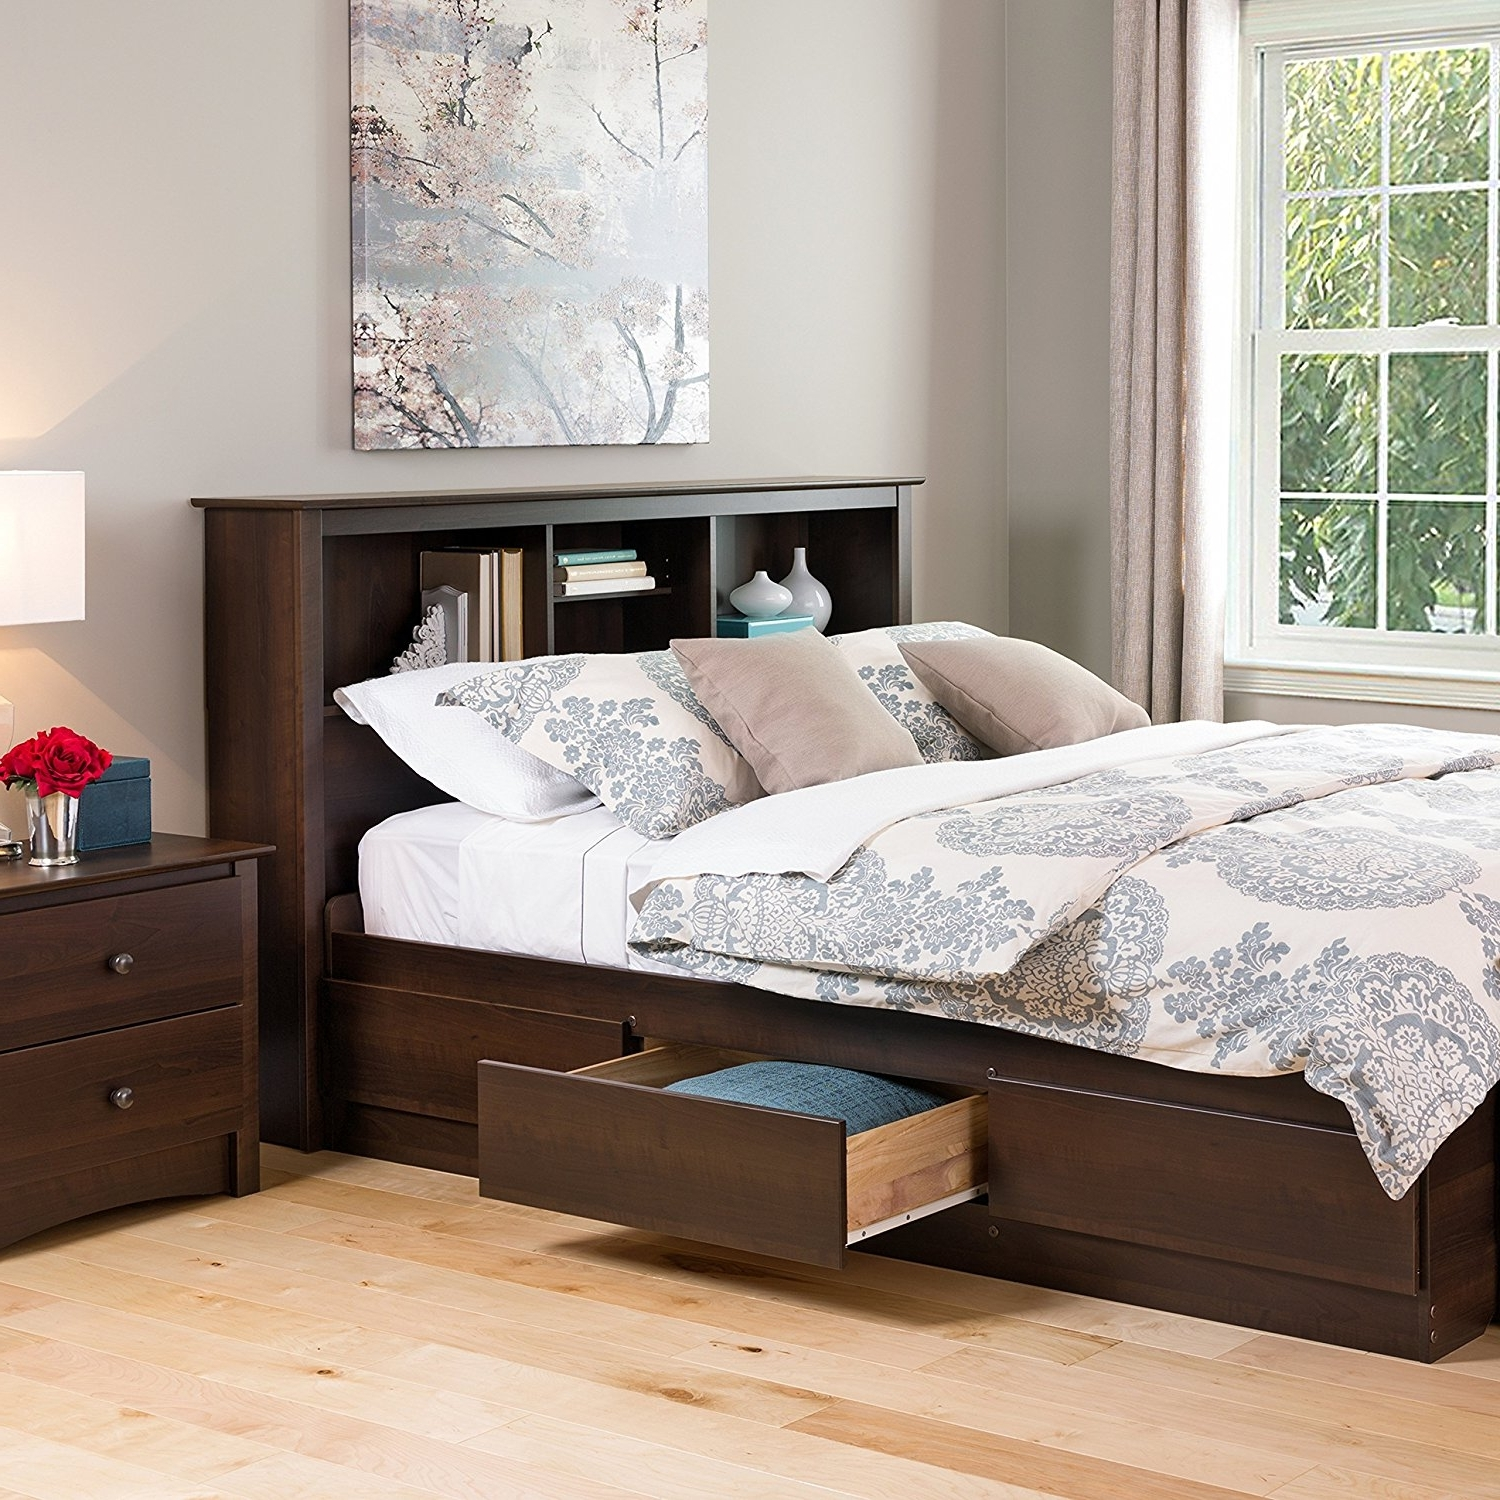 Most Popular Queen Size Bookcases Headboard Throughout Bed Frames : Winsome Double Frame Shelves With Bookshelves Shelf (View 10 of 15)